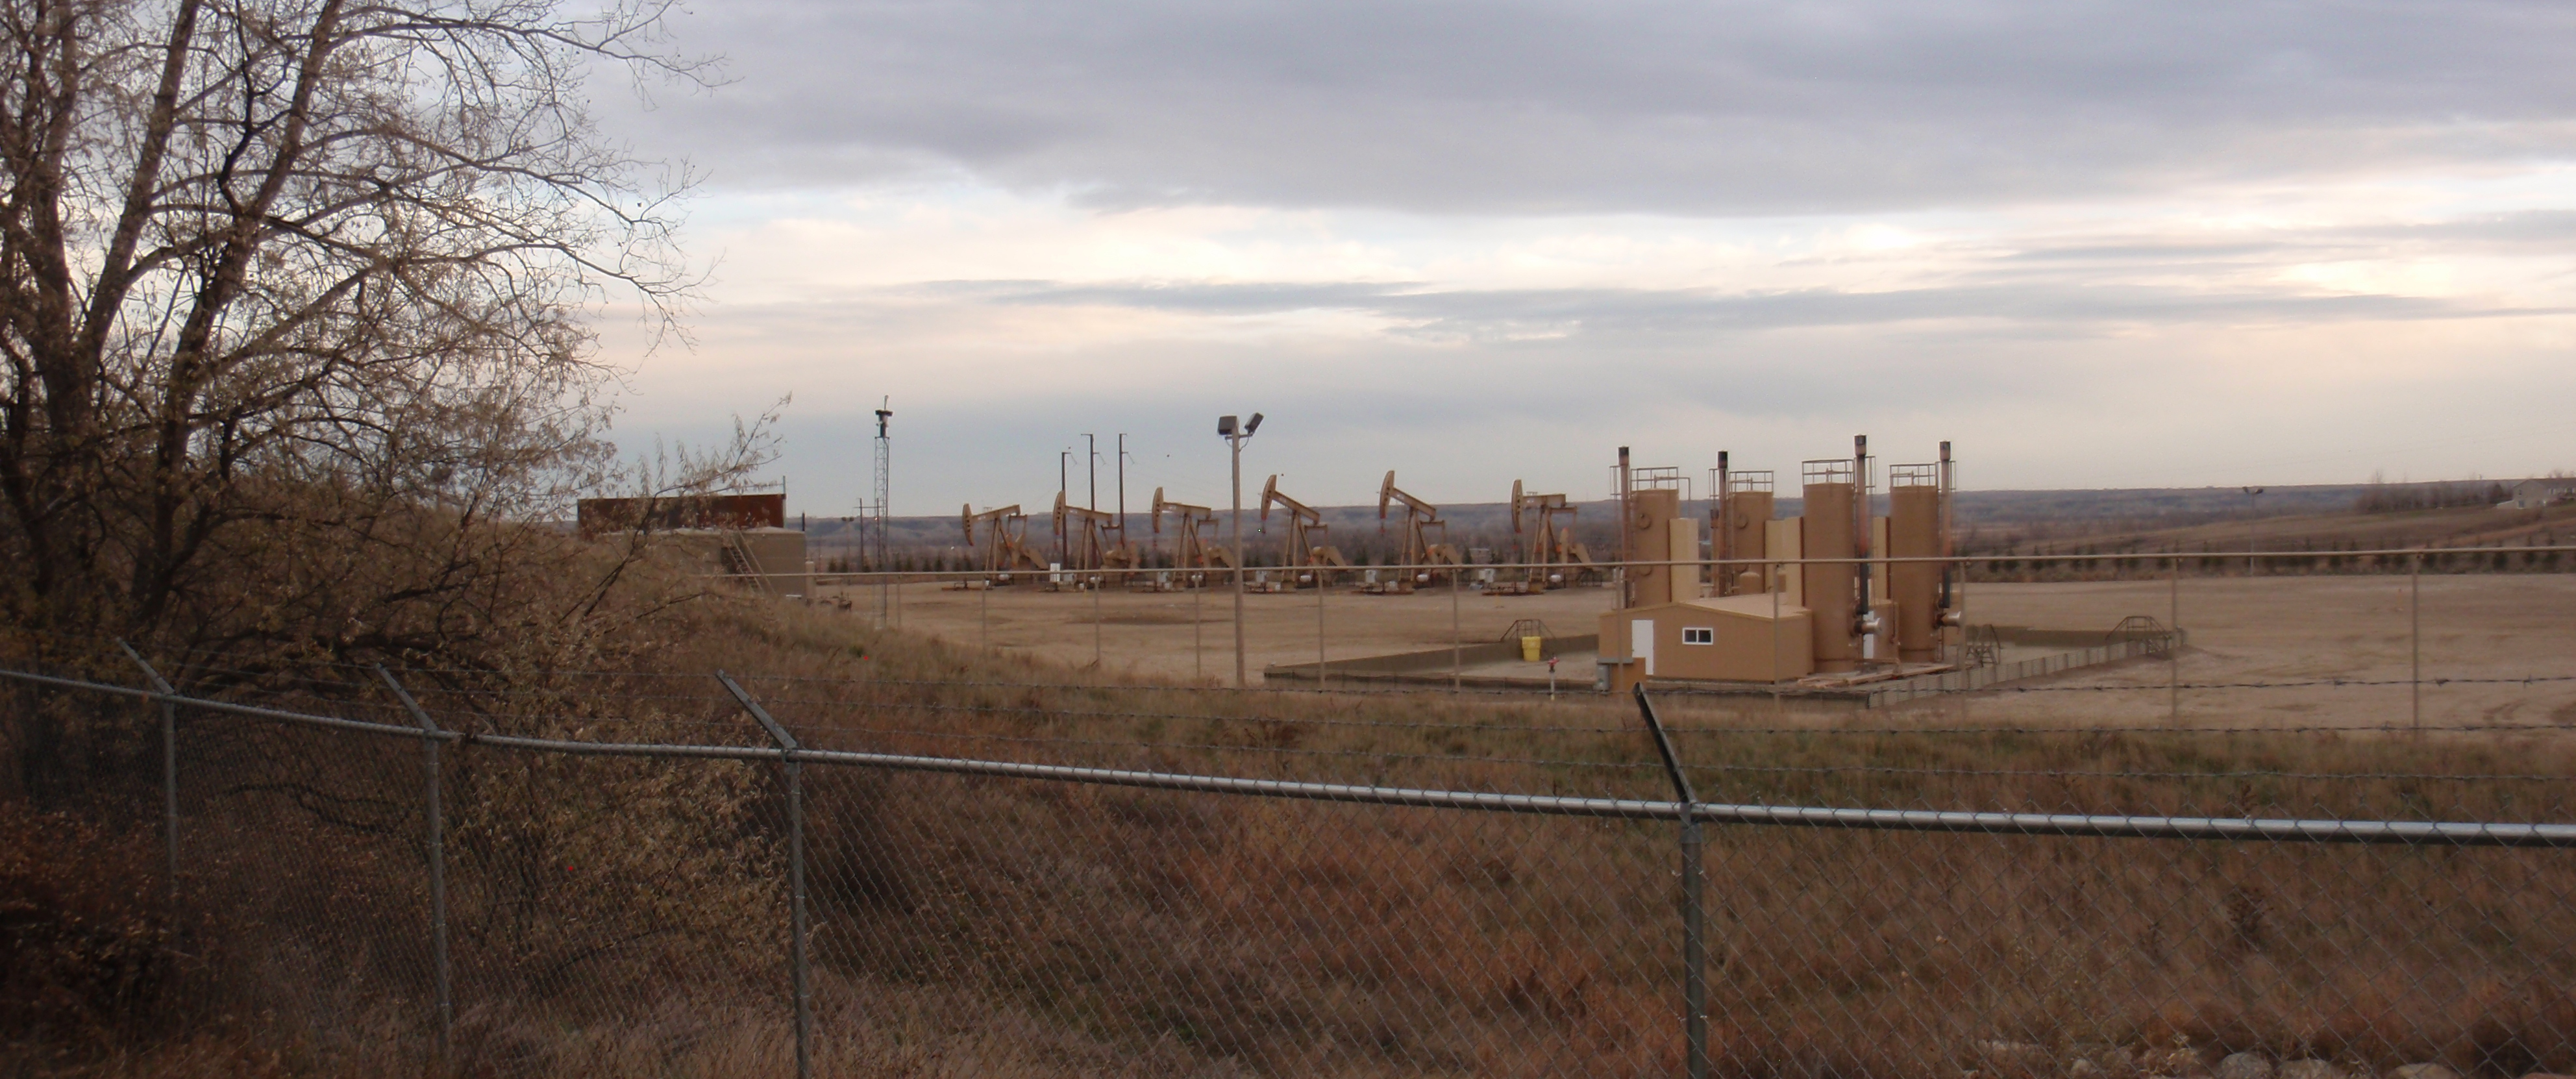 Six wells on east side of pad. Photo by James Ulvog.